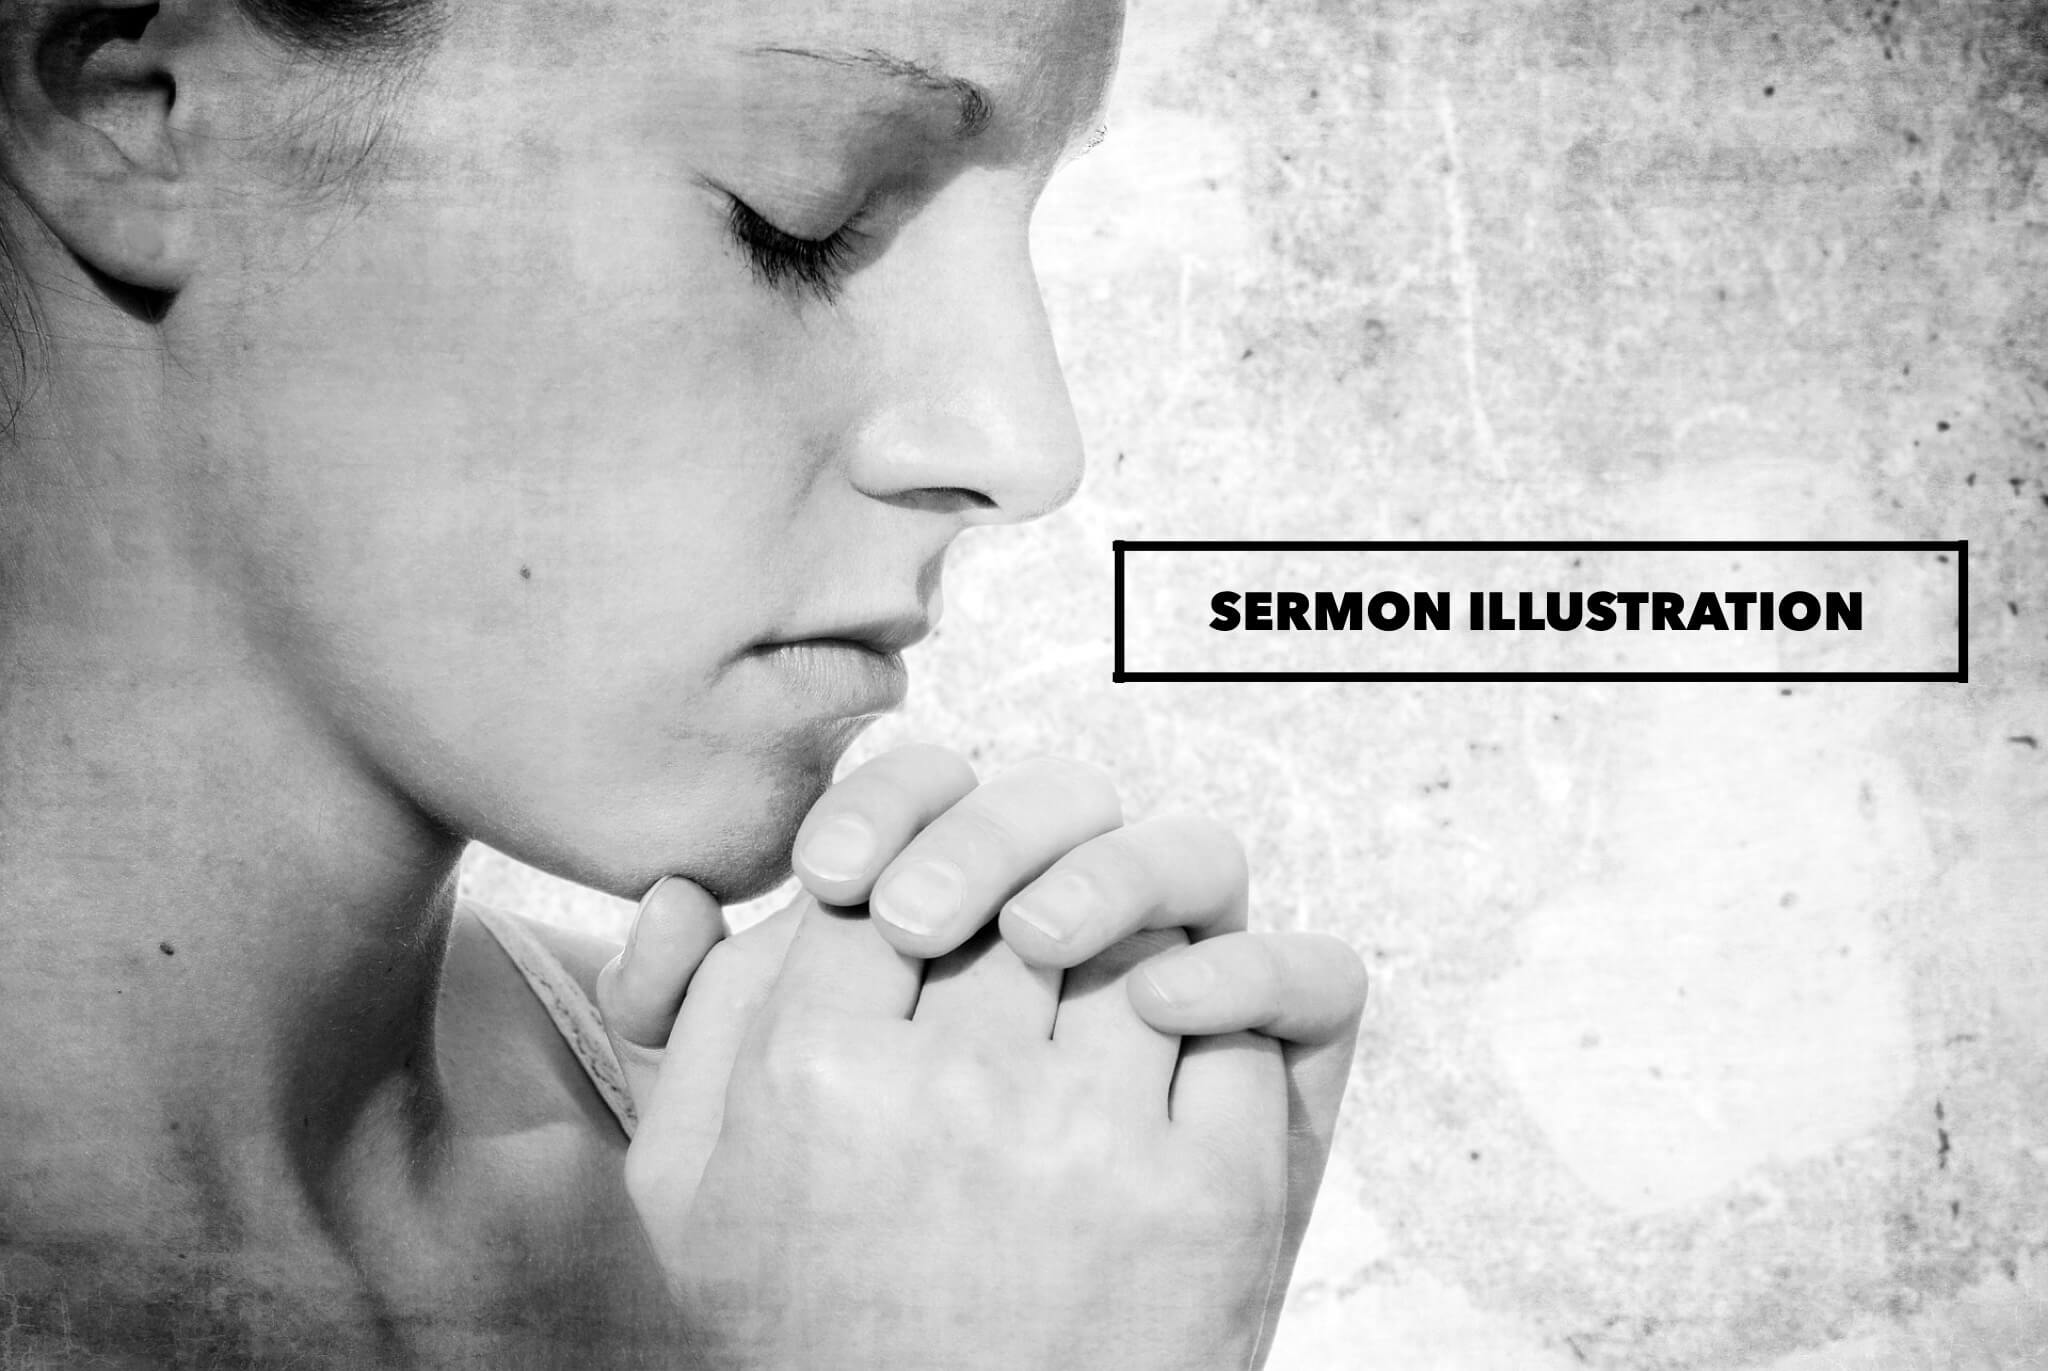 sermon illustration on prayer